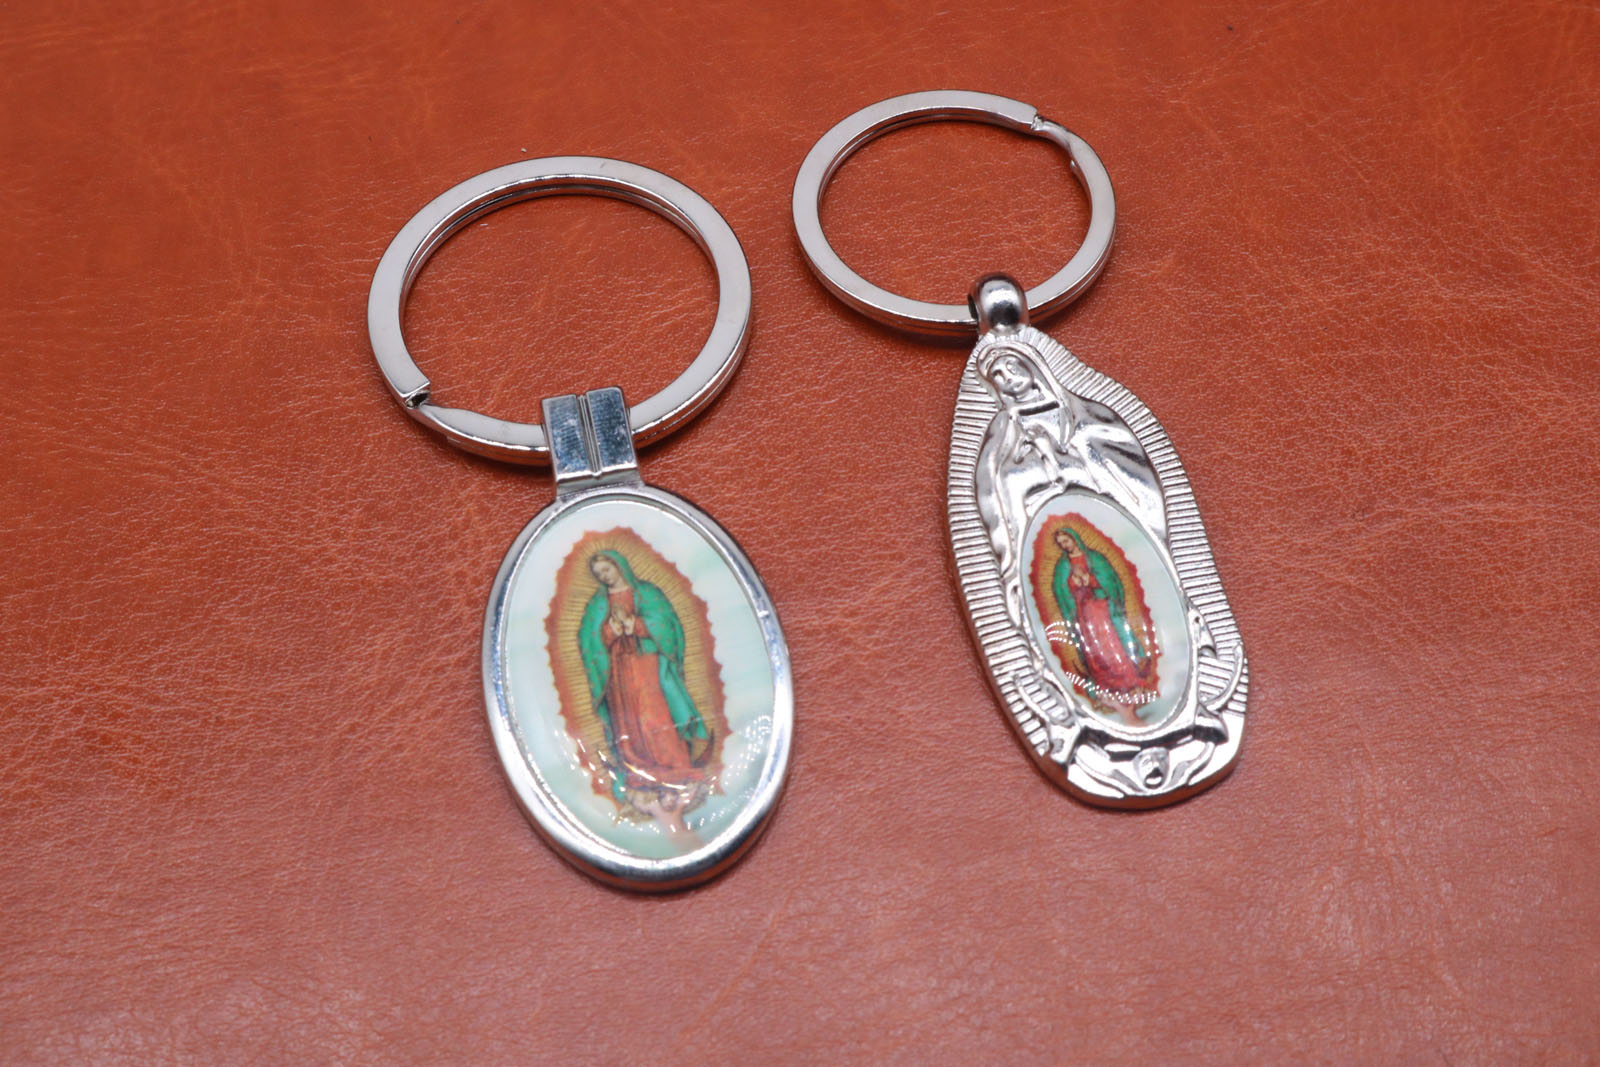 Classic Silver Charm Guadalupe Marie key key ring, key car, key ring, handbag, gift accessories free shipping